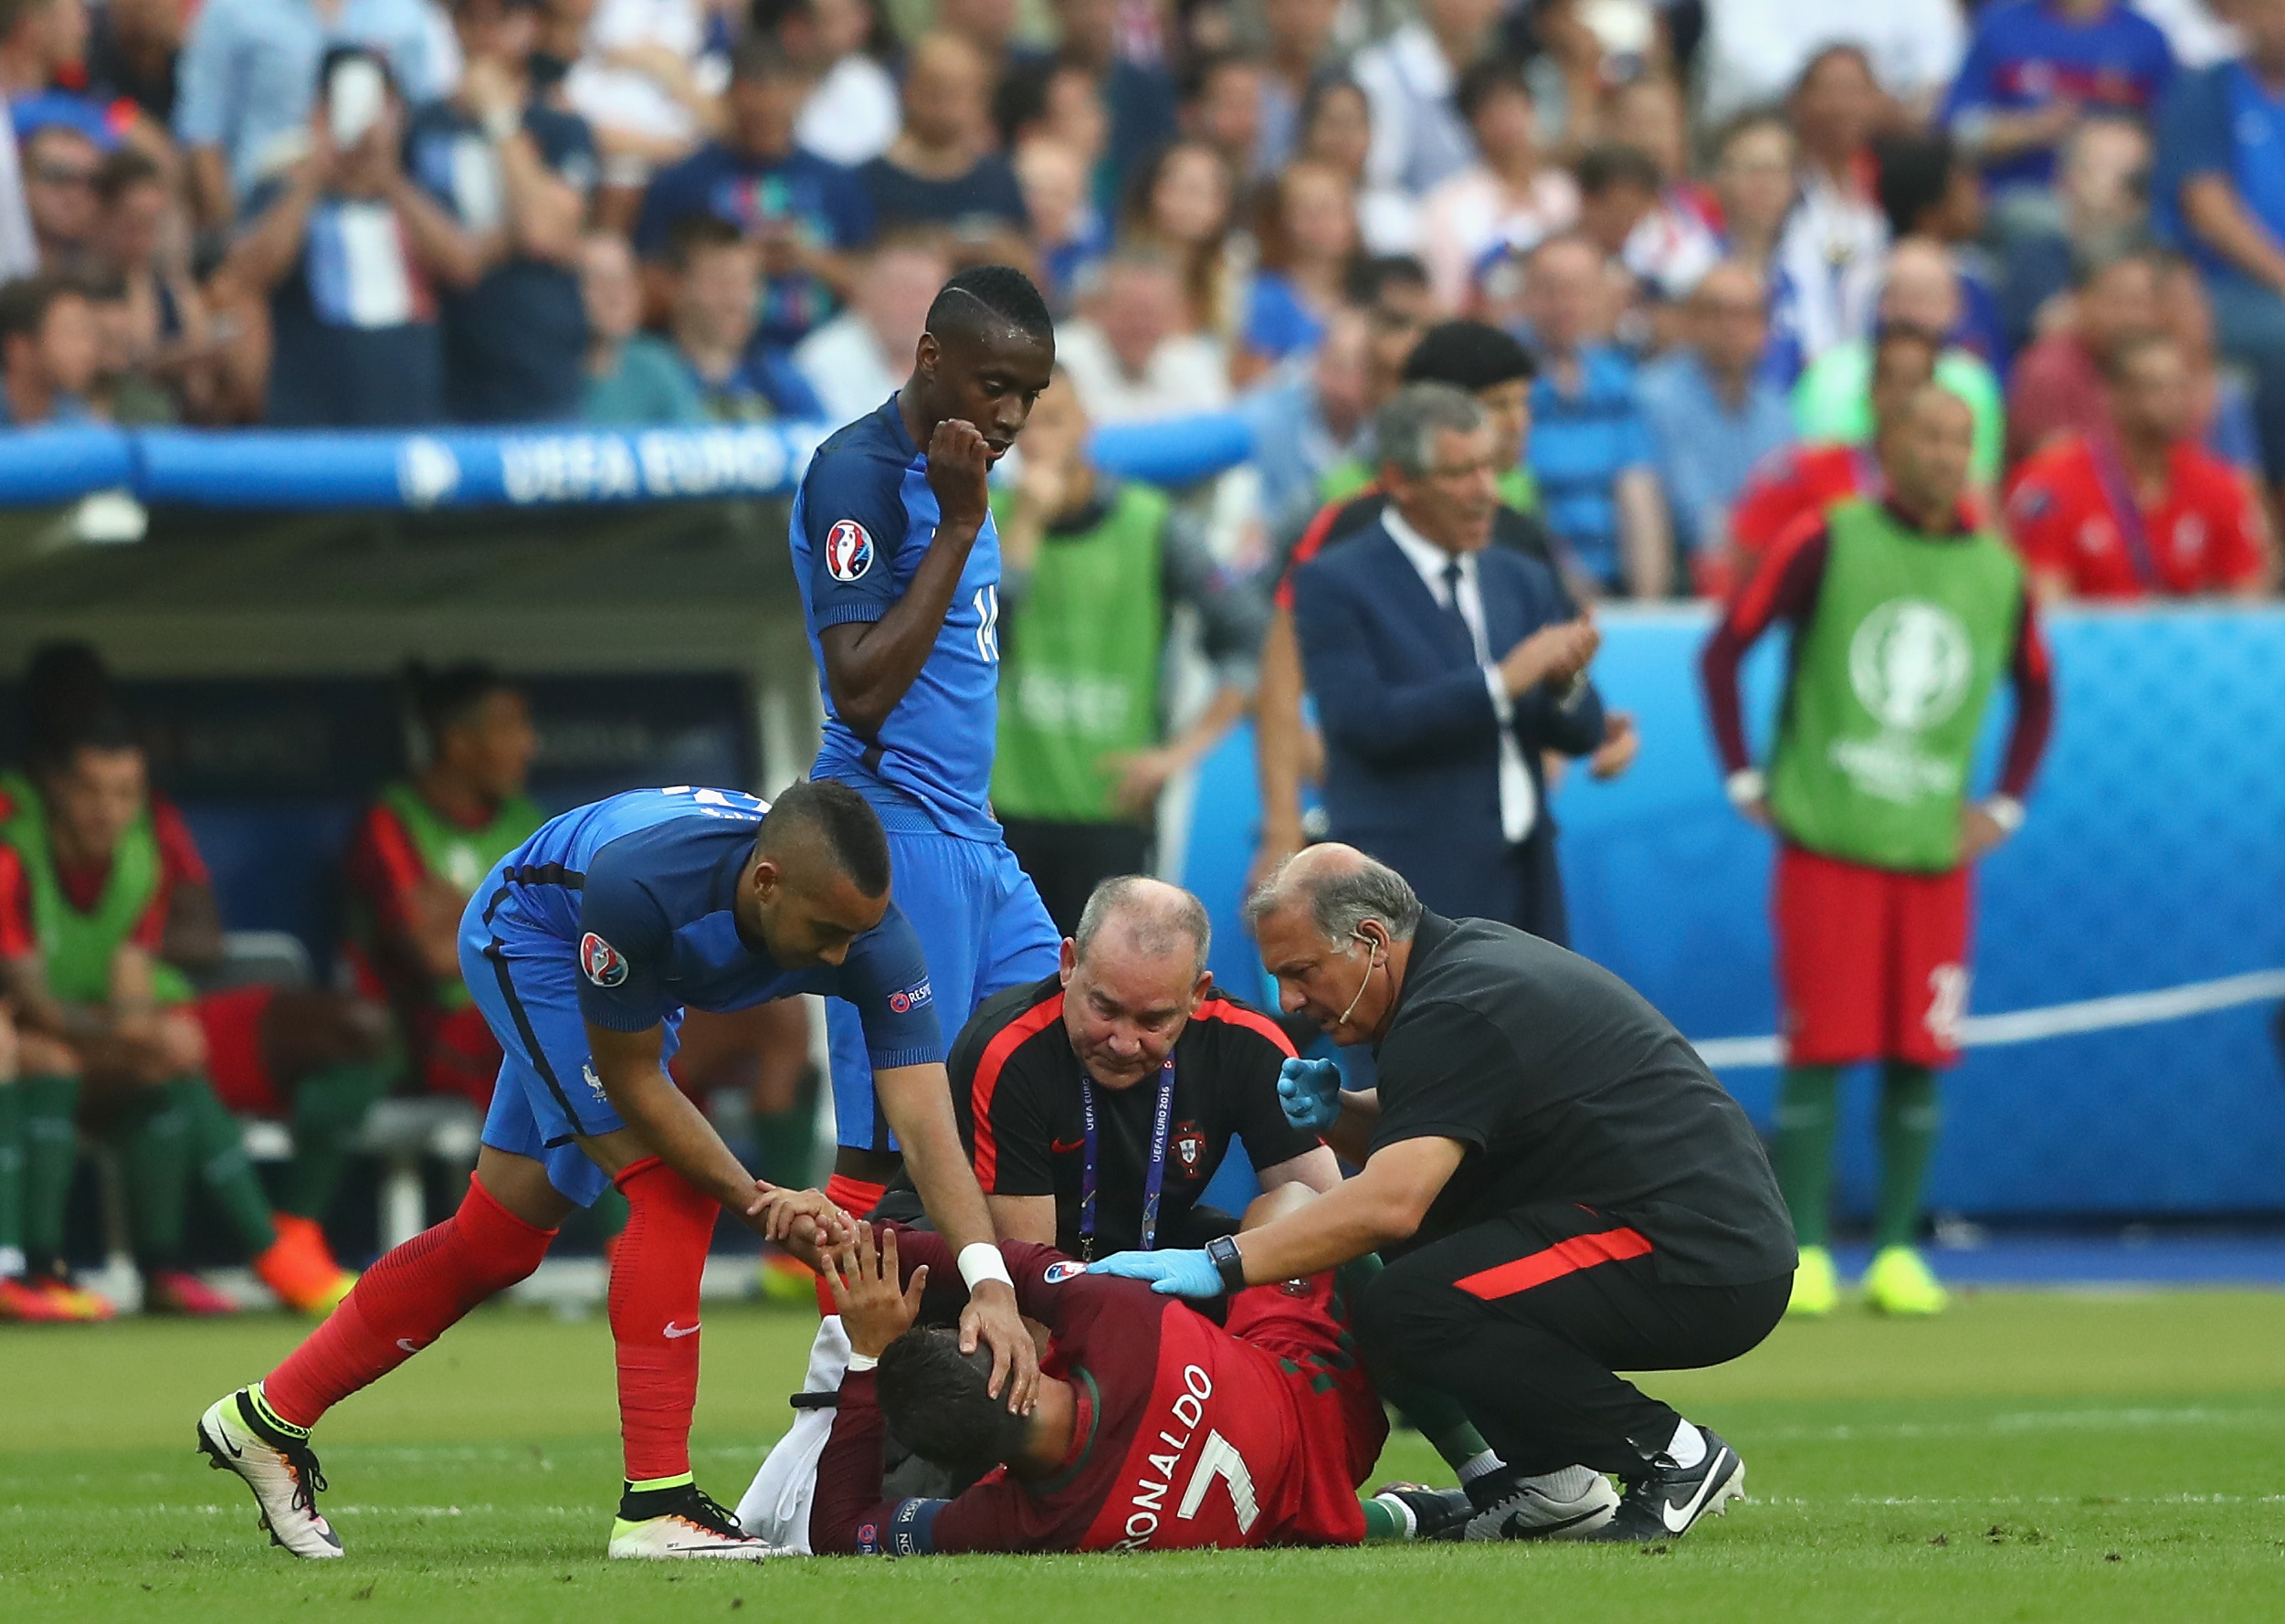 Dimitri Payet offers his take on the challenge that injured